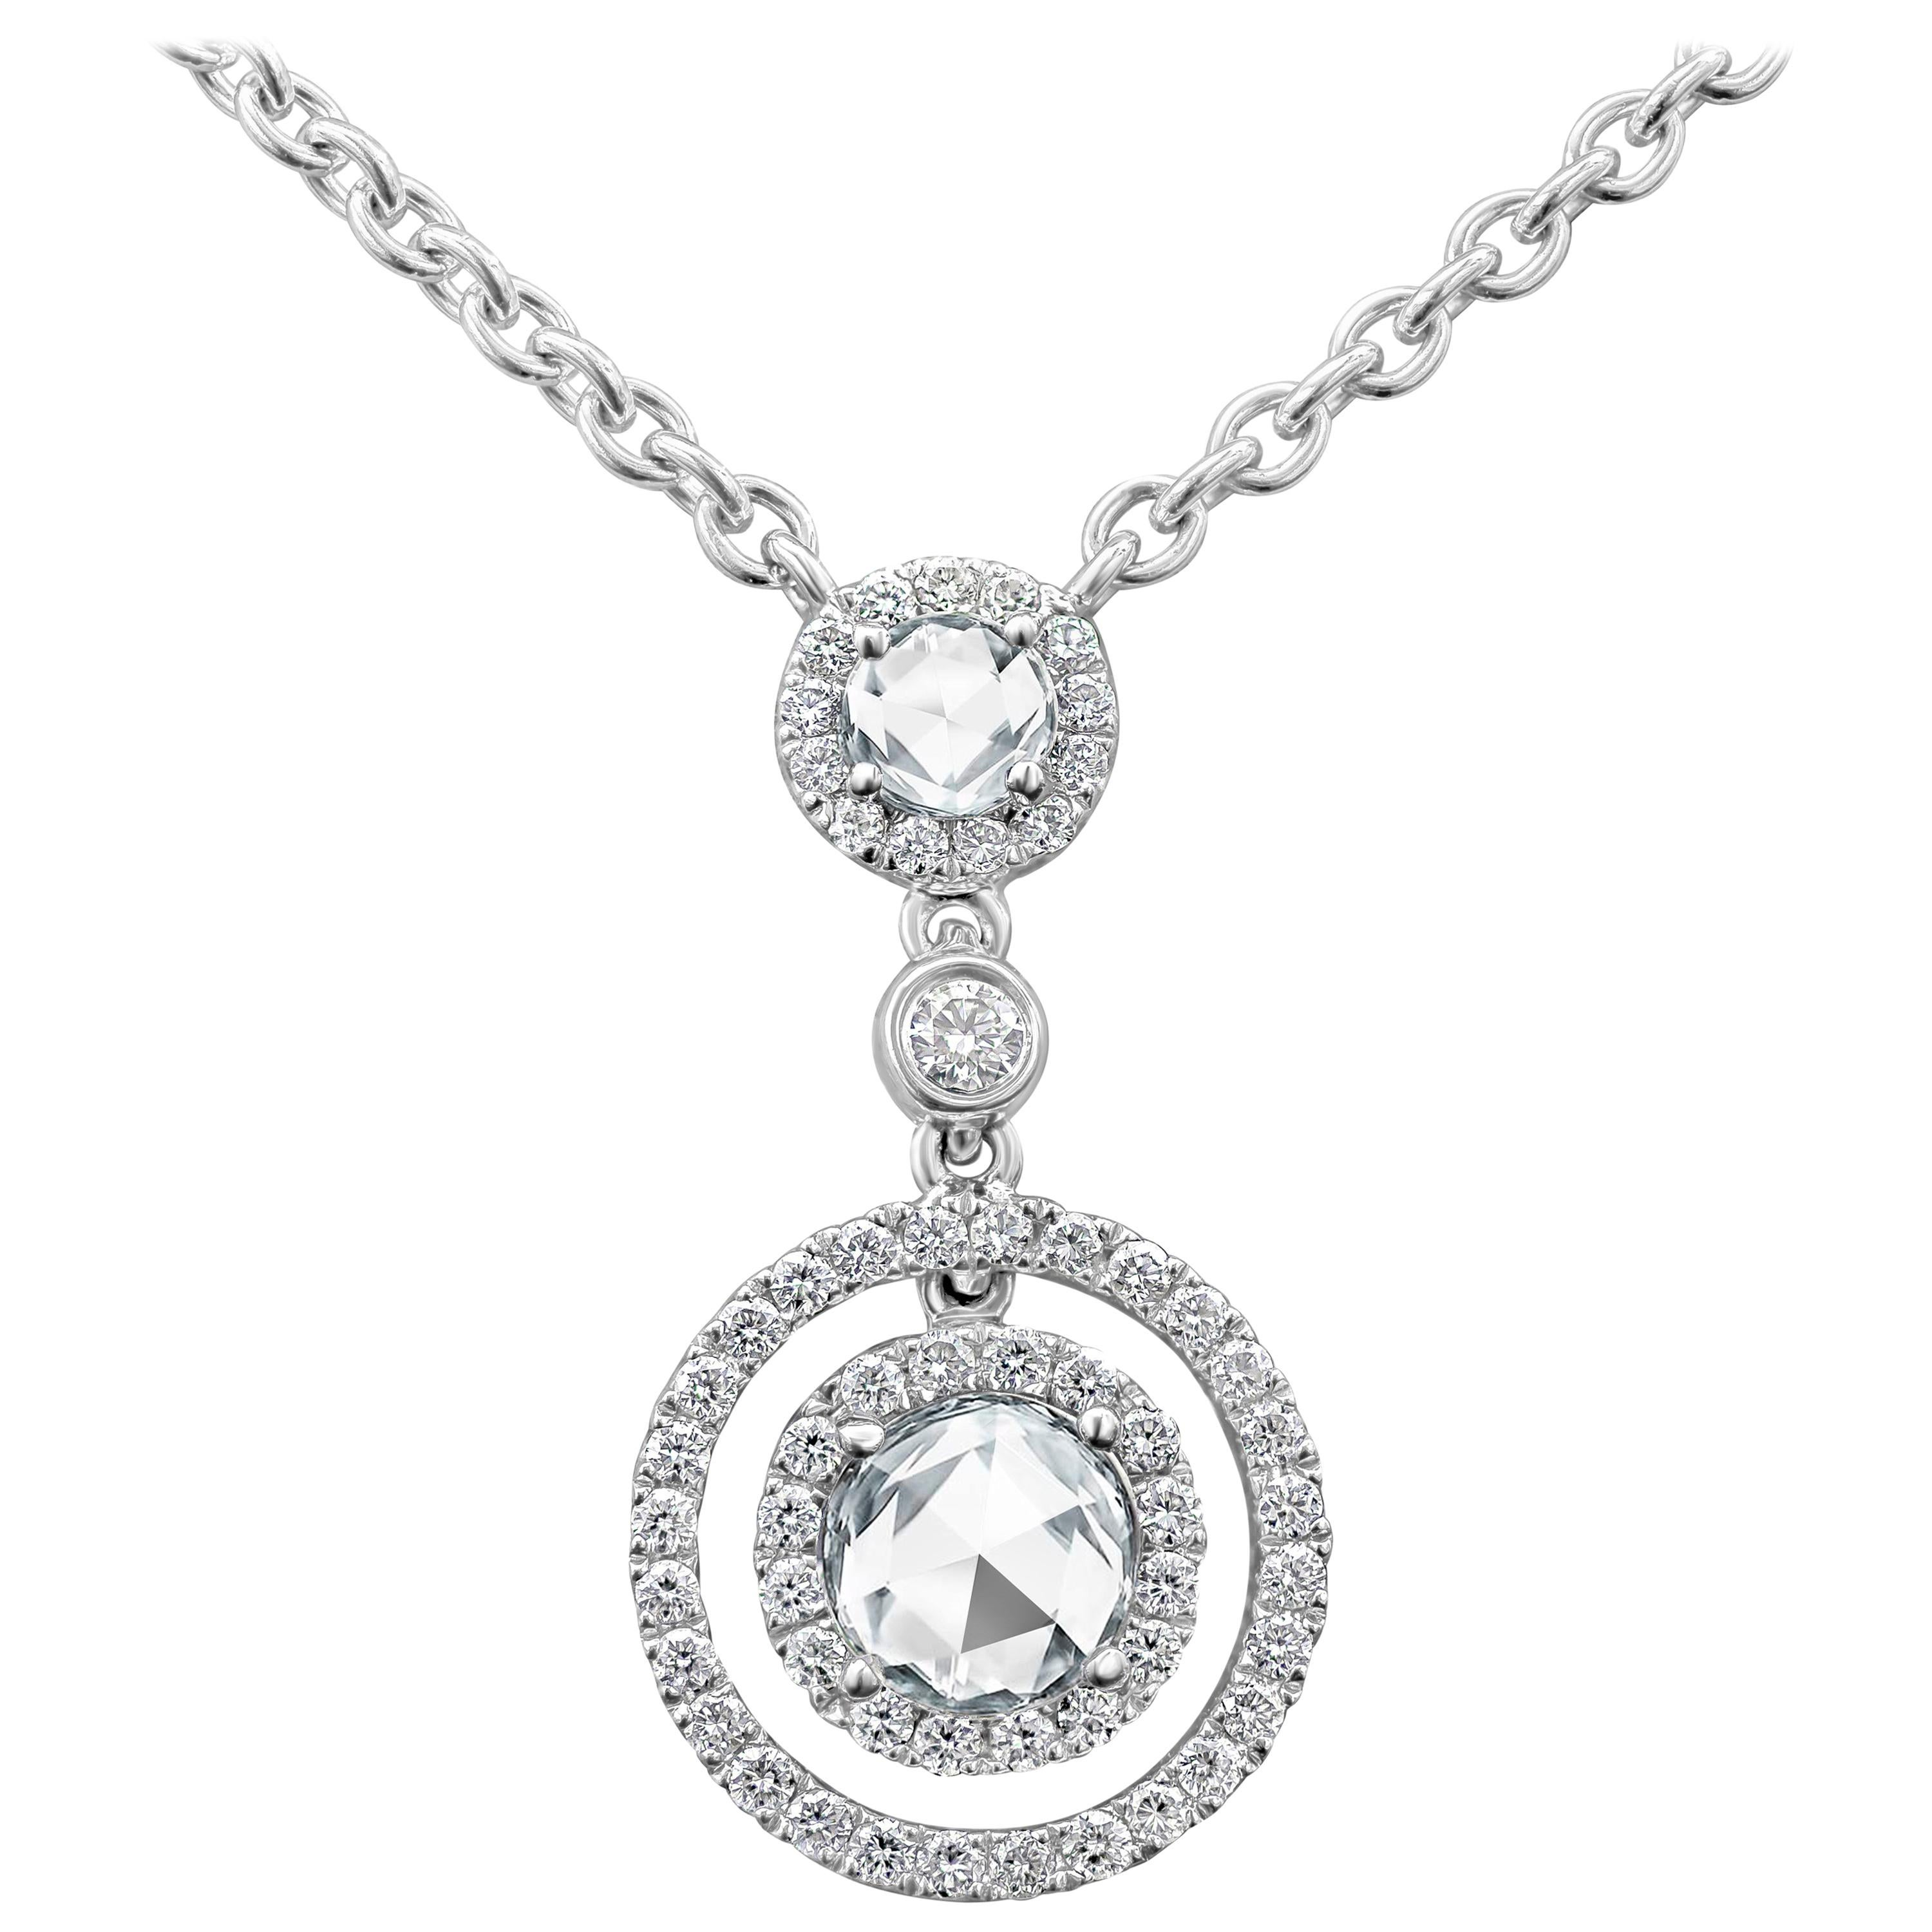 896843aa79274 Rose Cut Diamond Halo Pendant Necklace with Diamonds by the Yard Chain